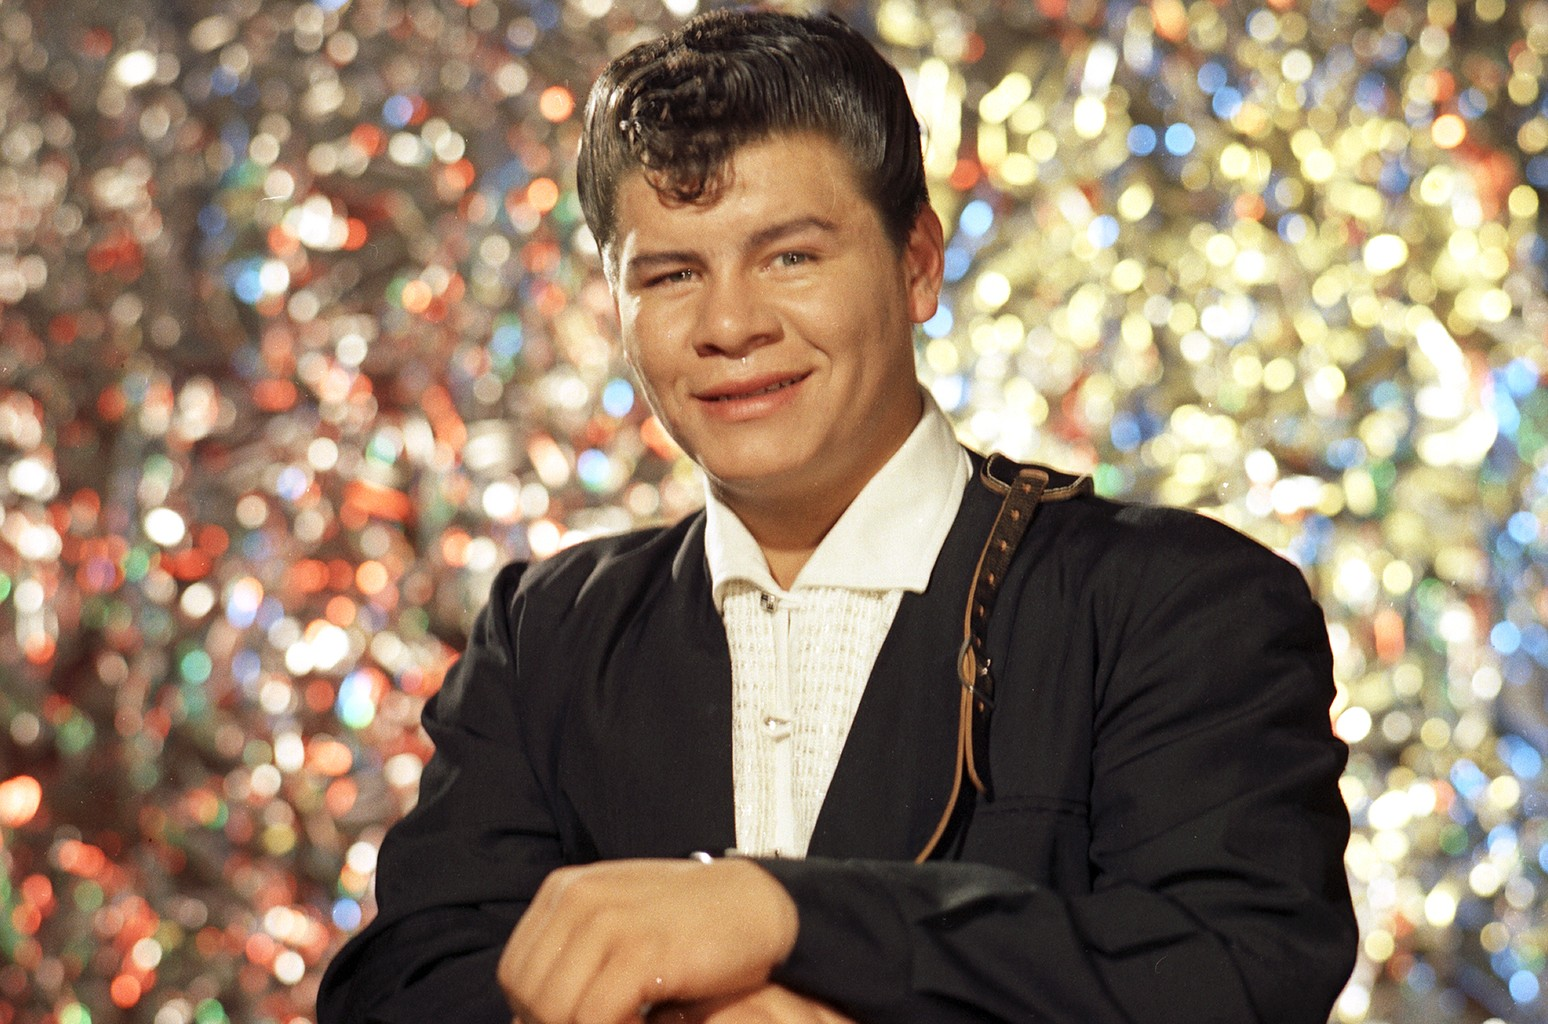 Ritchie Valens (Richard Steven Valenzuela) poses for his famous album cover session in July 1958 in Los Angeles.